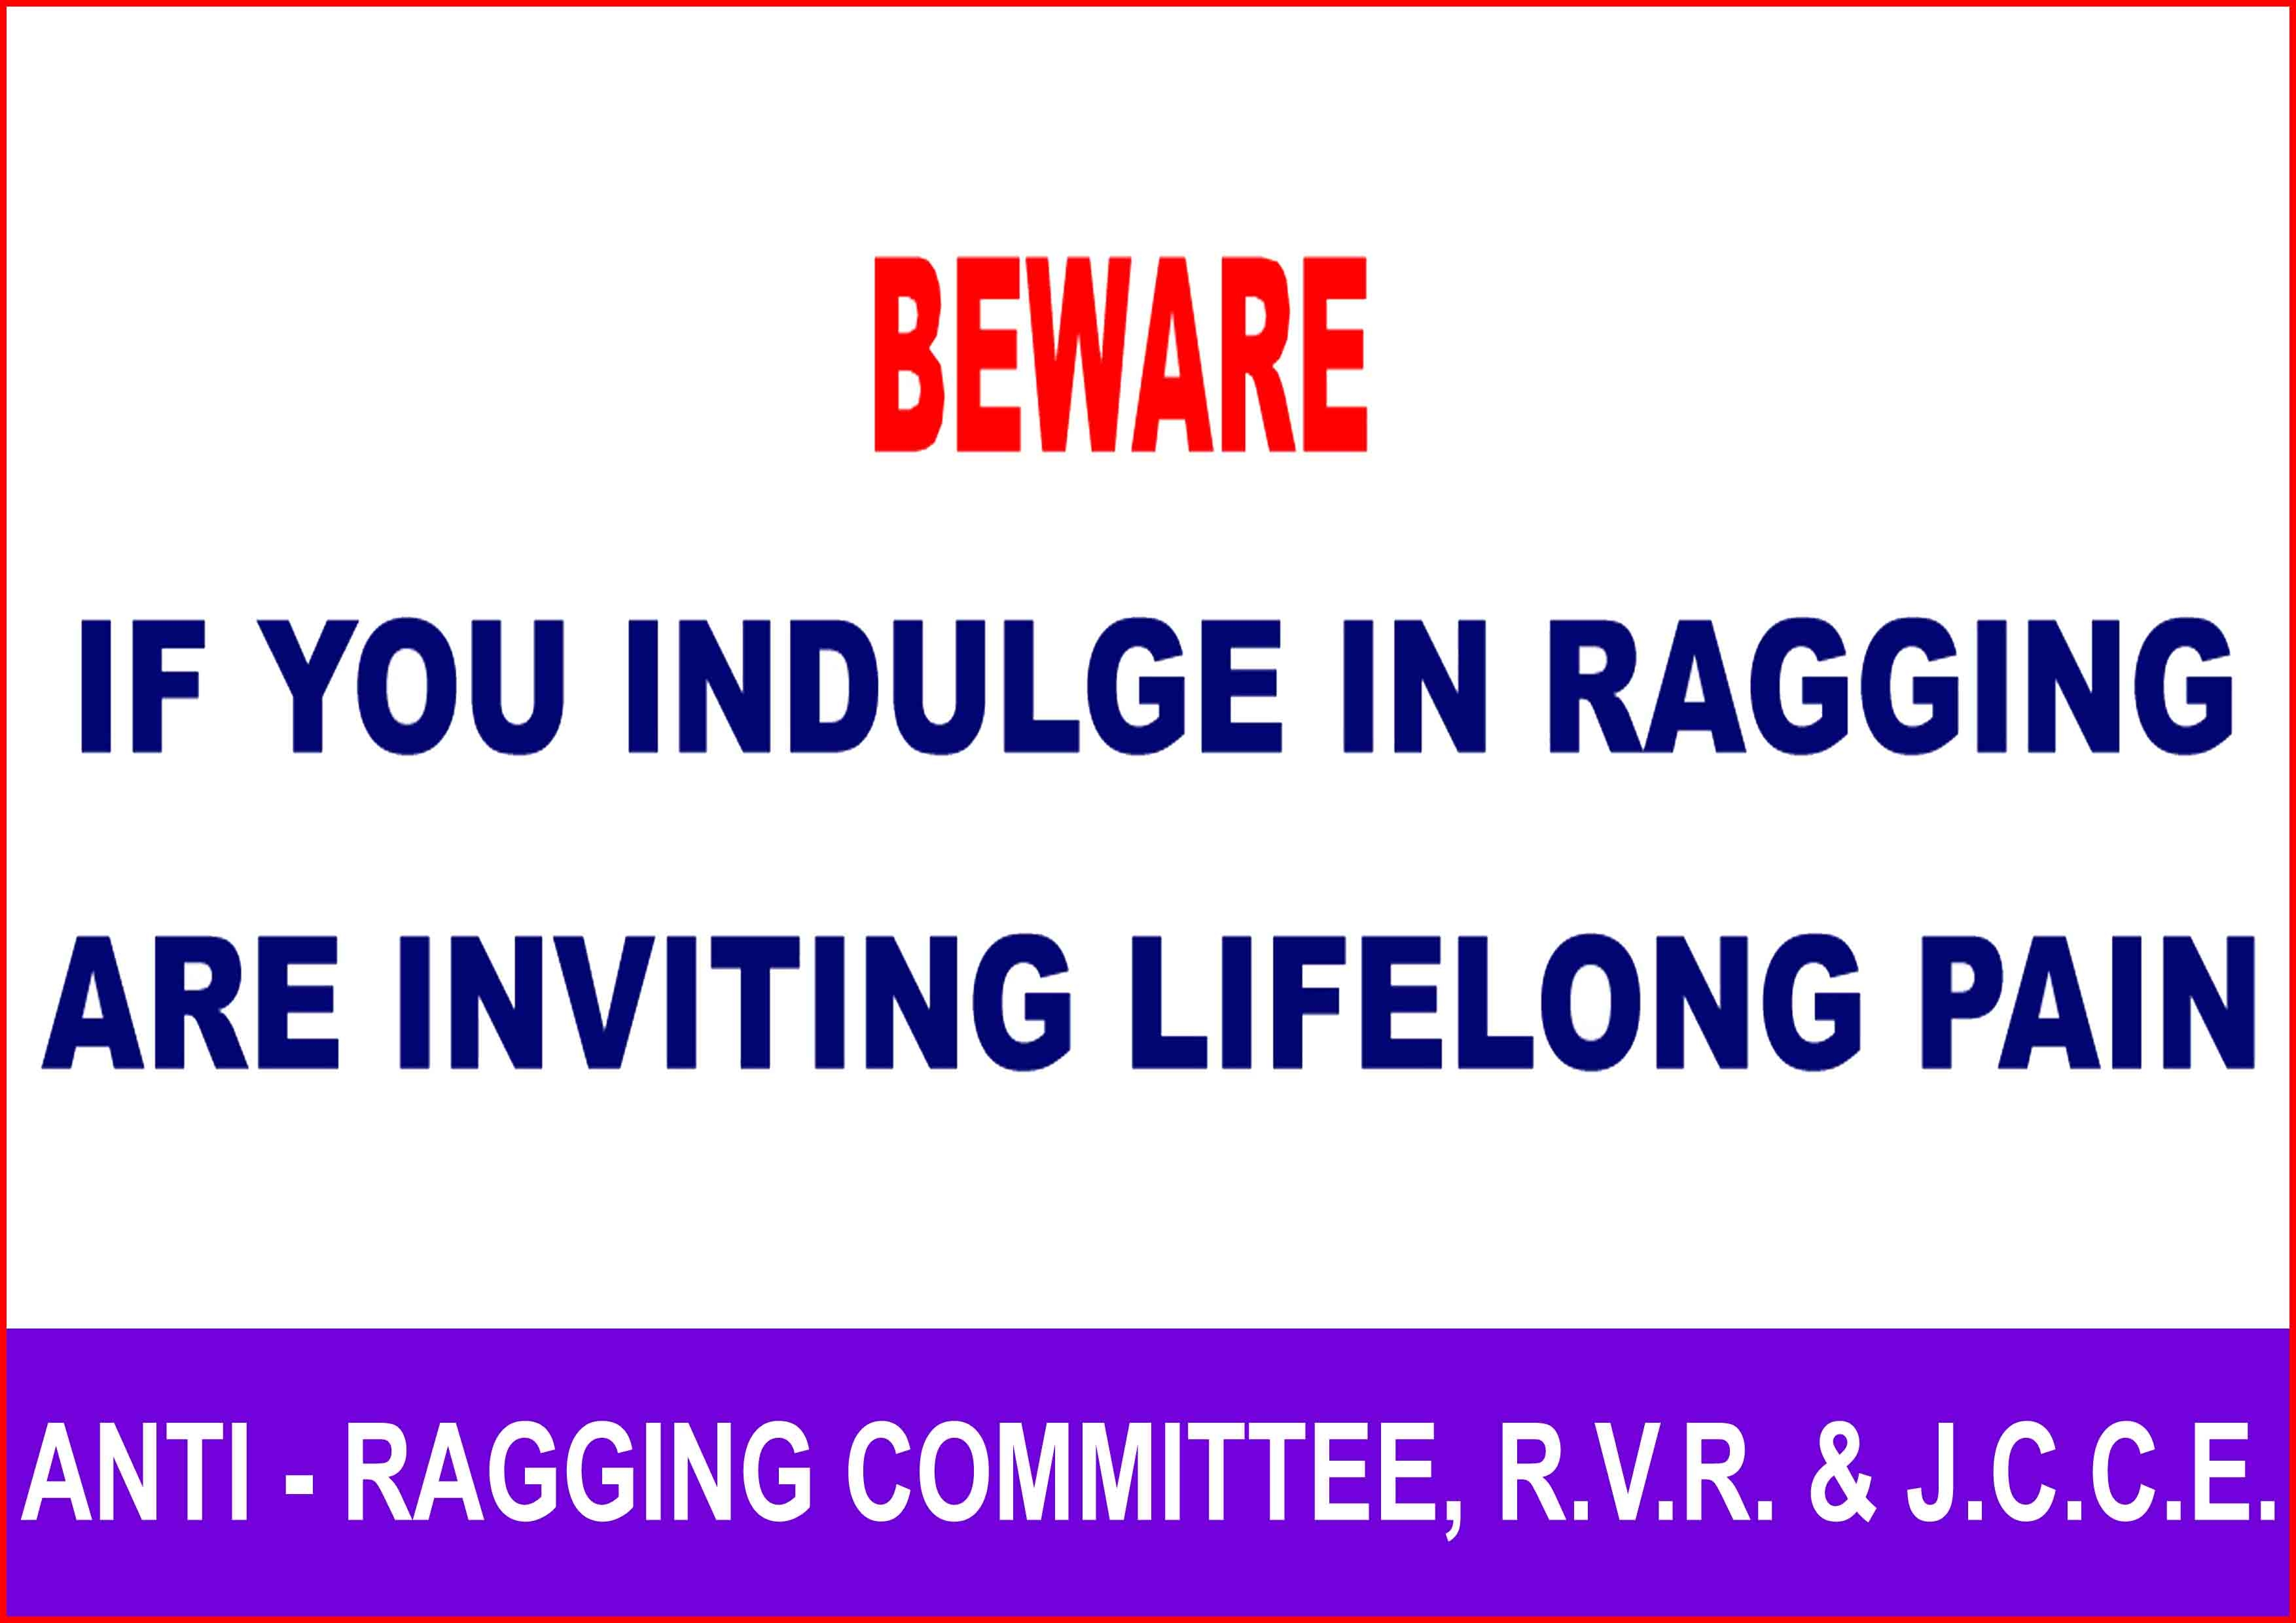 about ragging